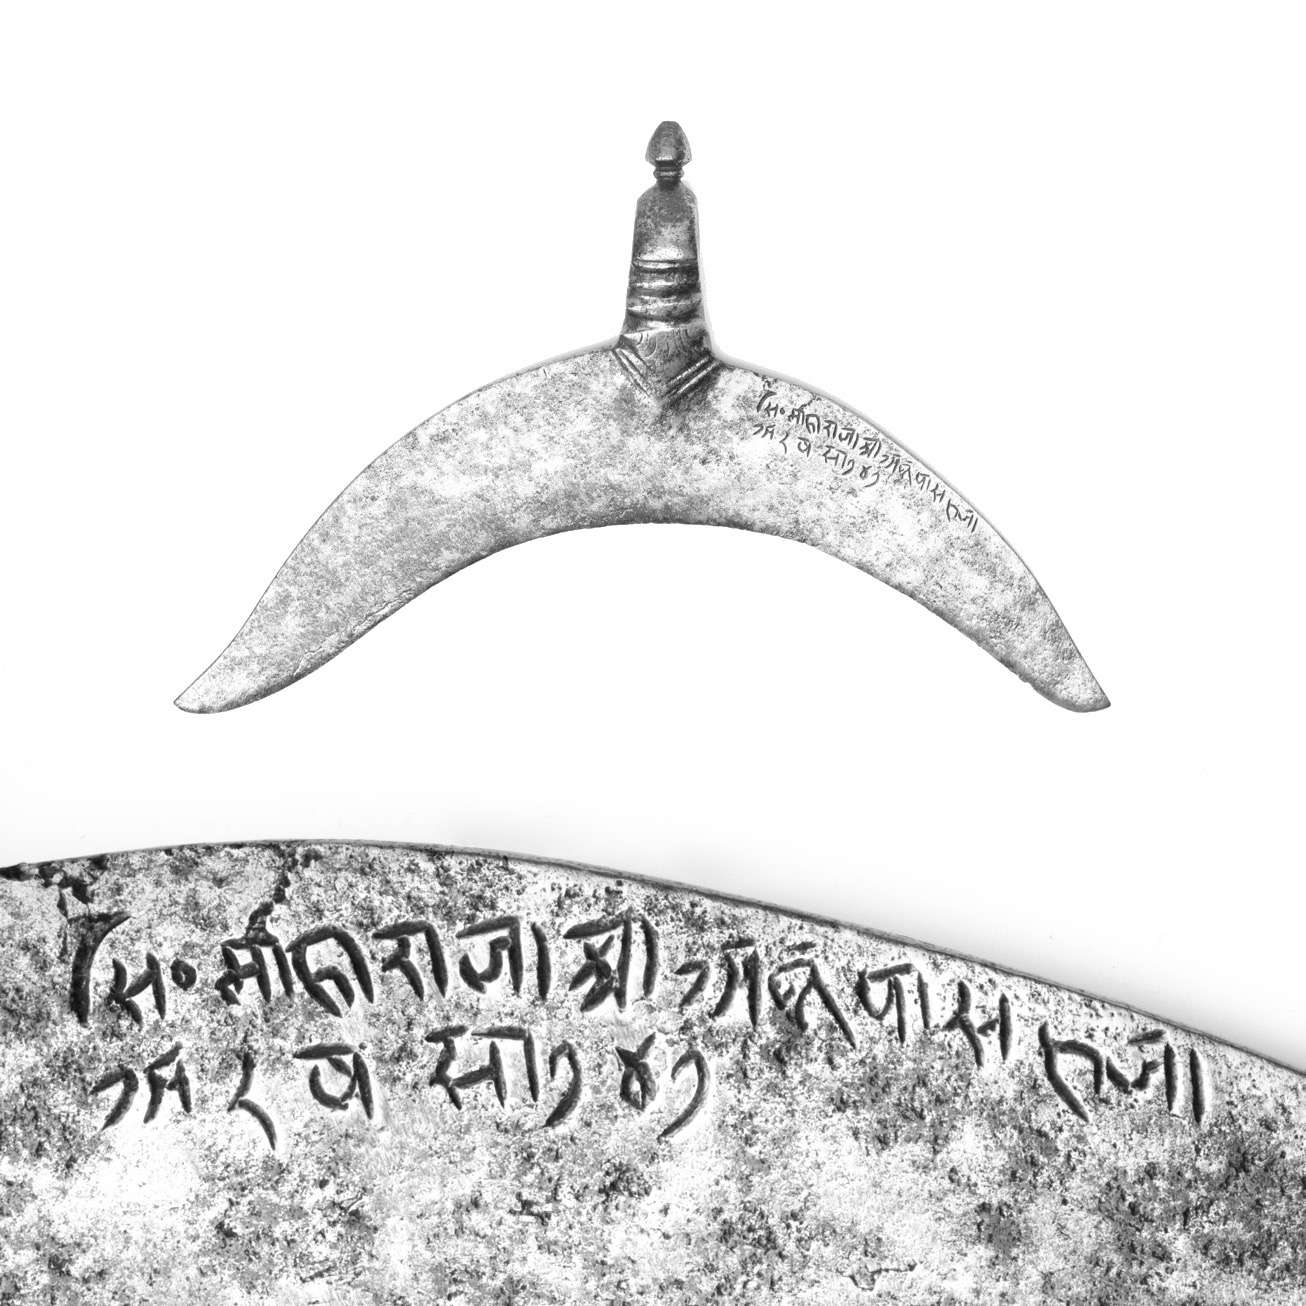 Indian axe with Anup Singh marking